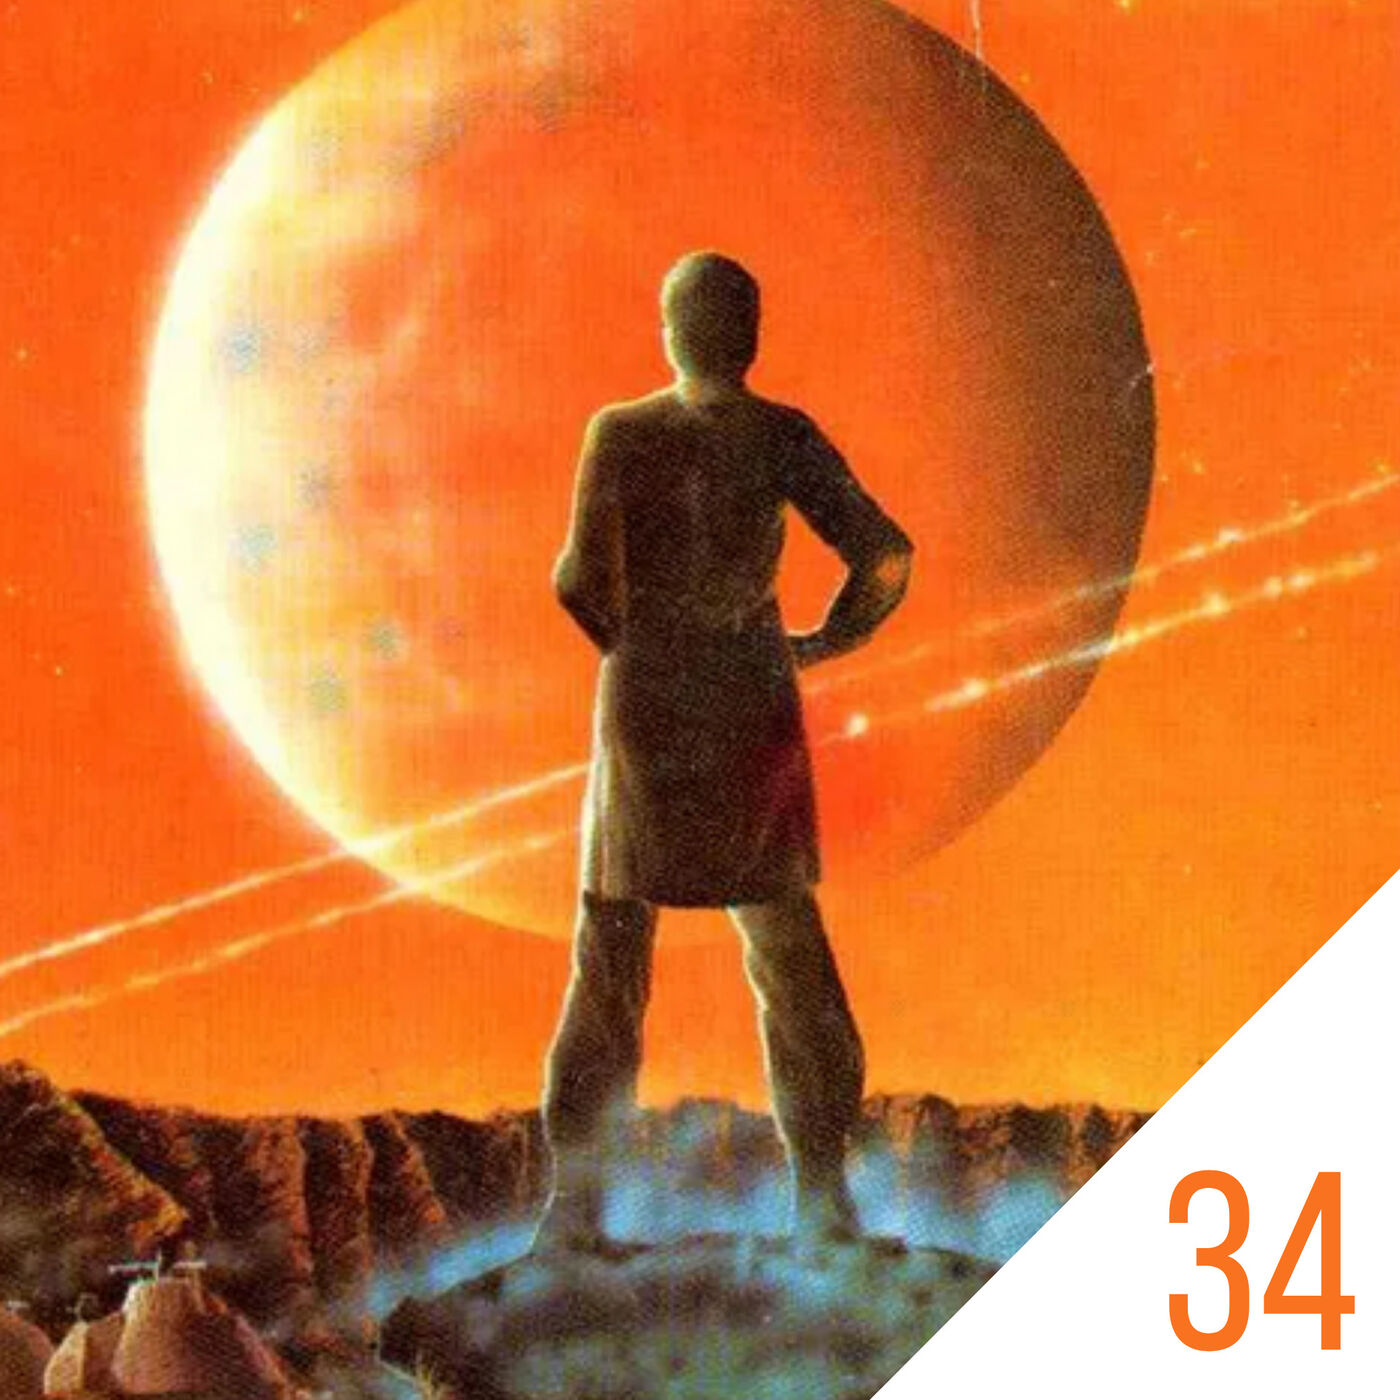 #34 Read This: The Dispossessed (1974) by Ursula K. Le Guin